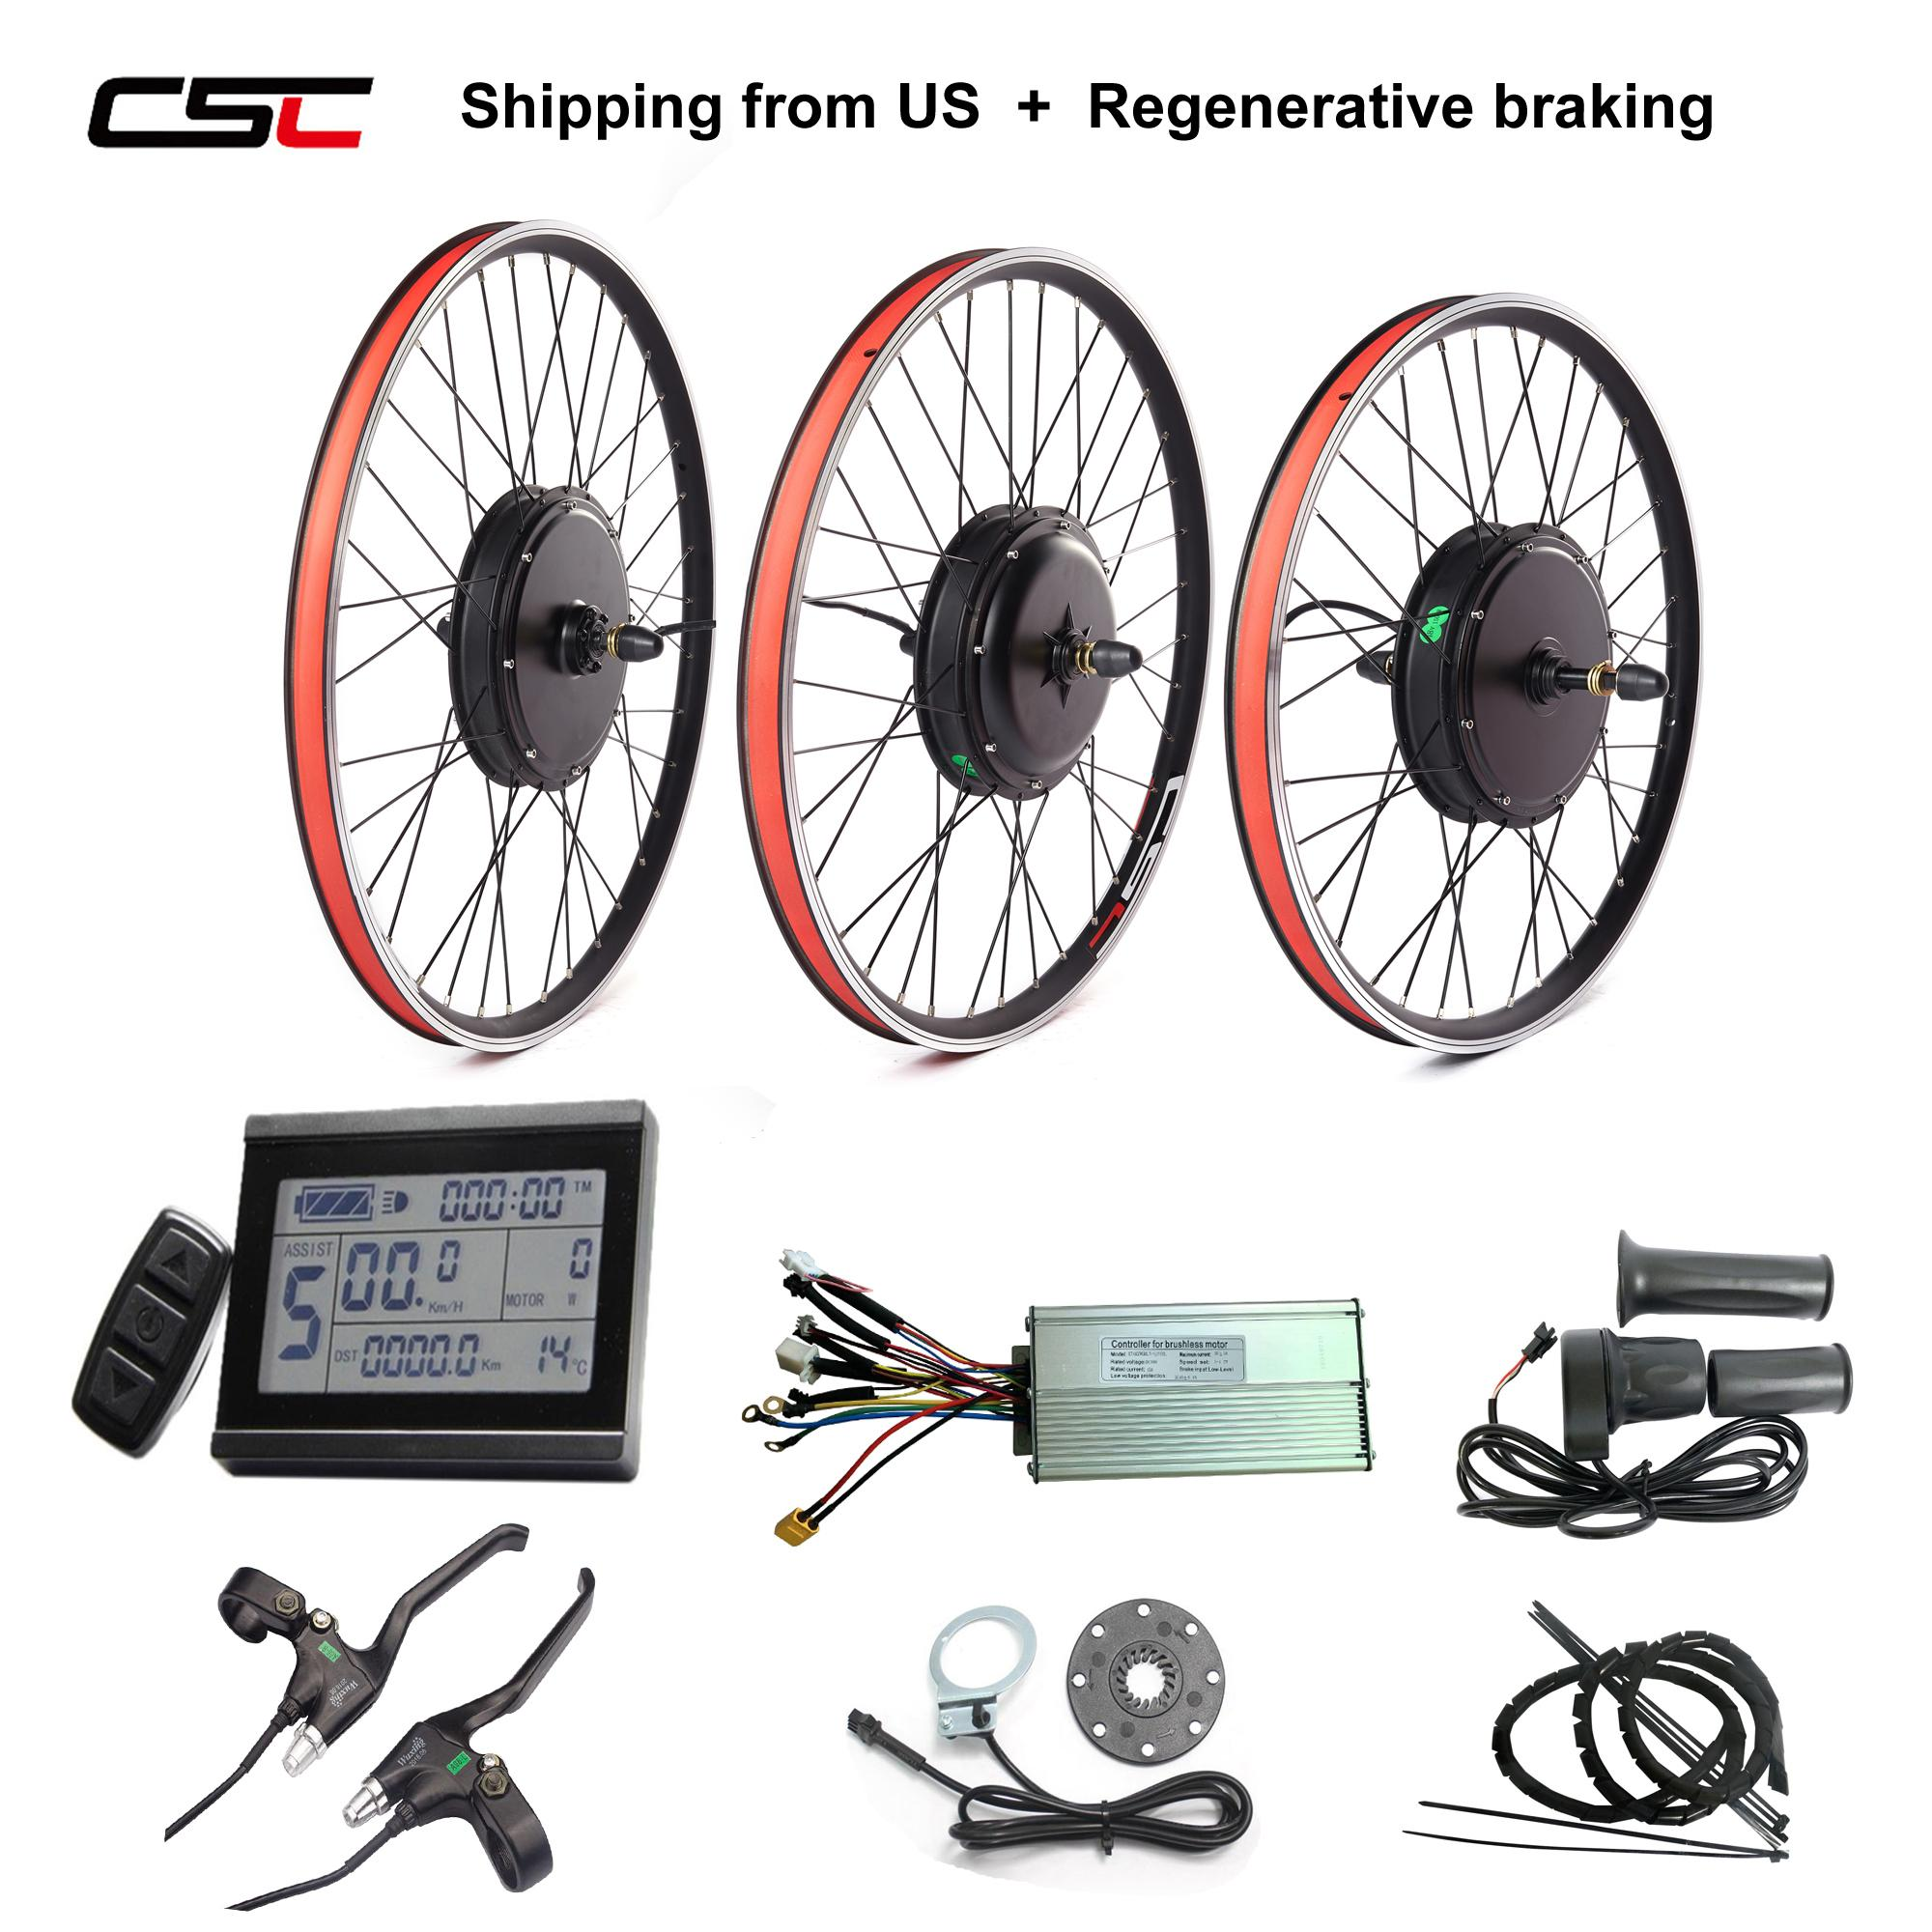 Electric Bike Hub Motor Wheel 48V 1500W Regenerative Brake include Tax